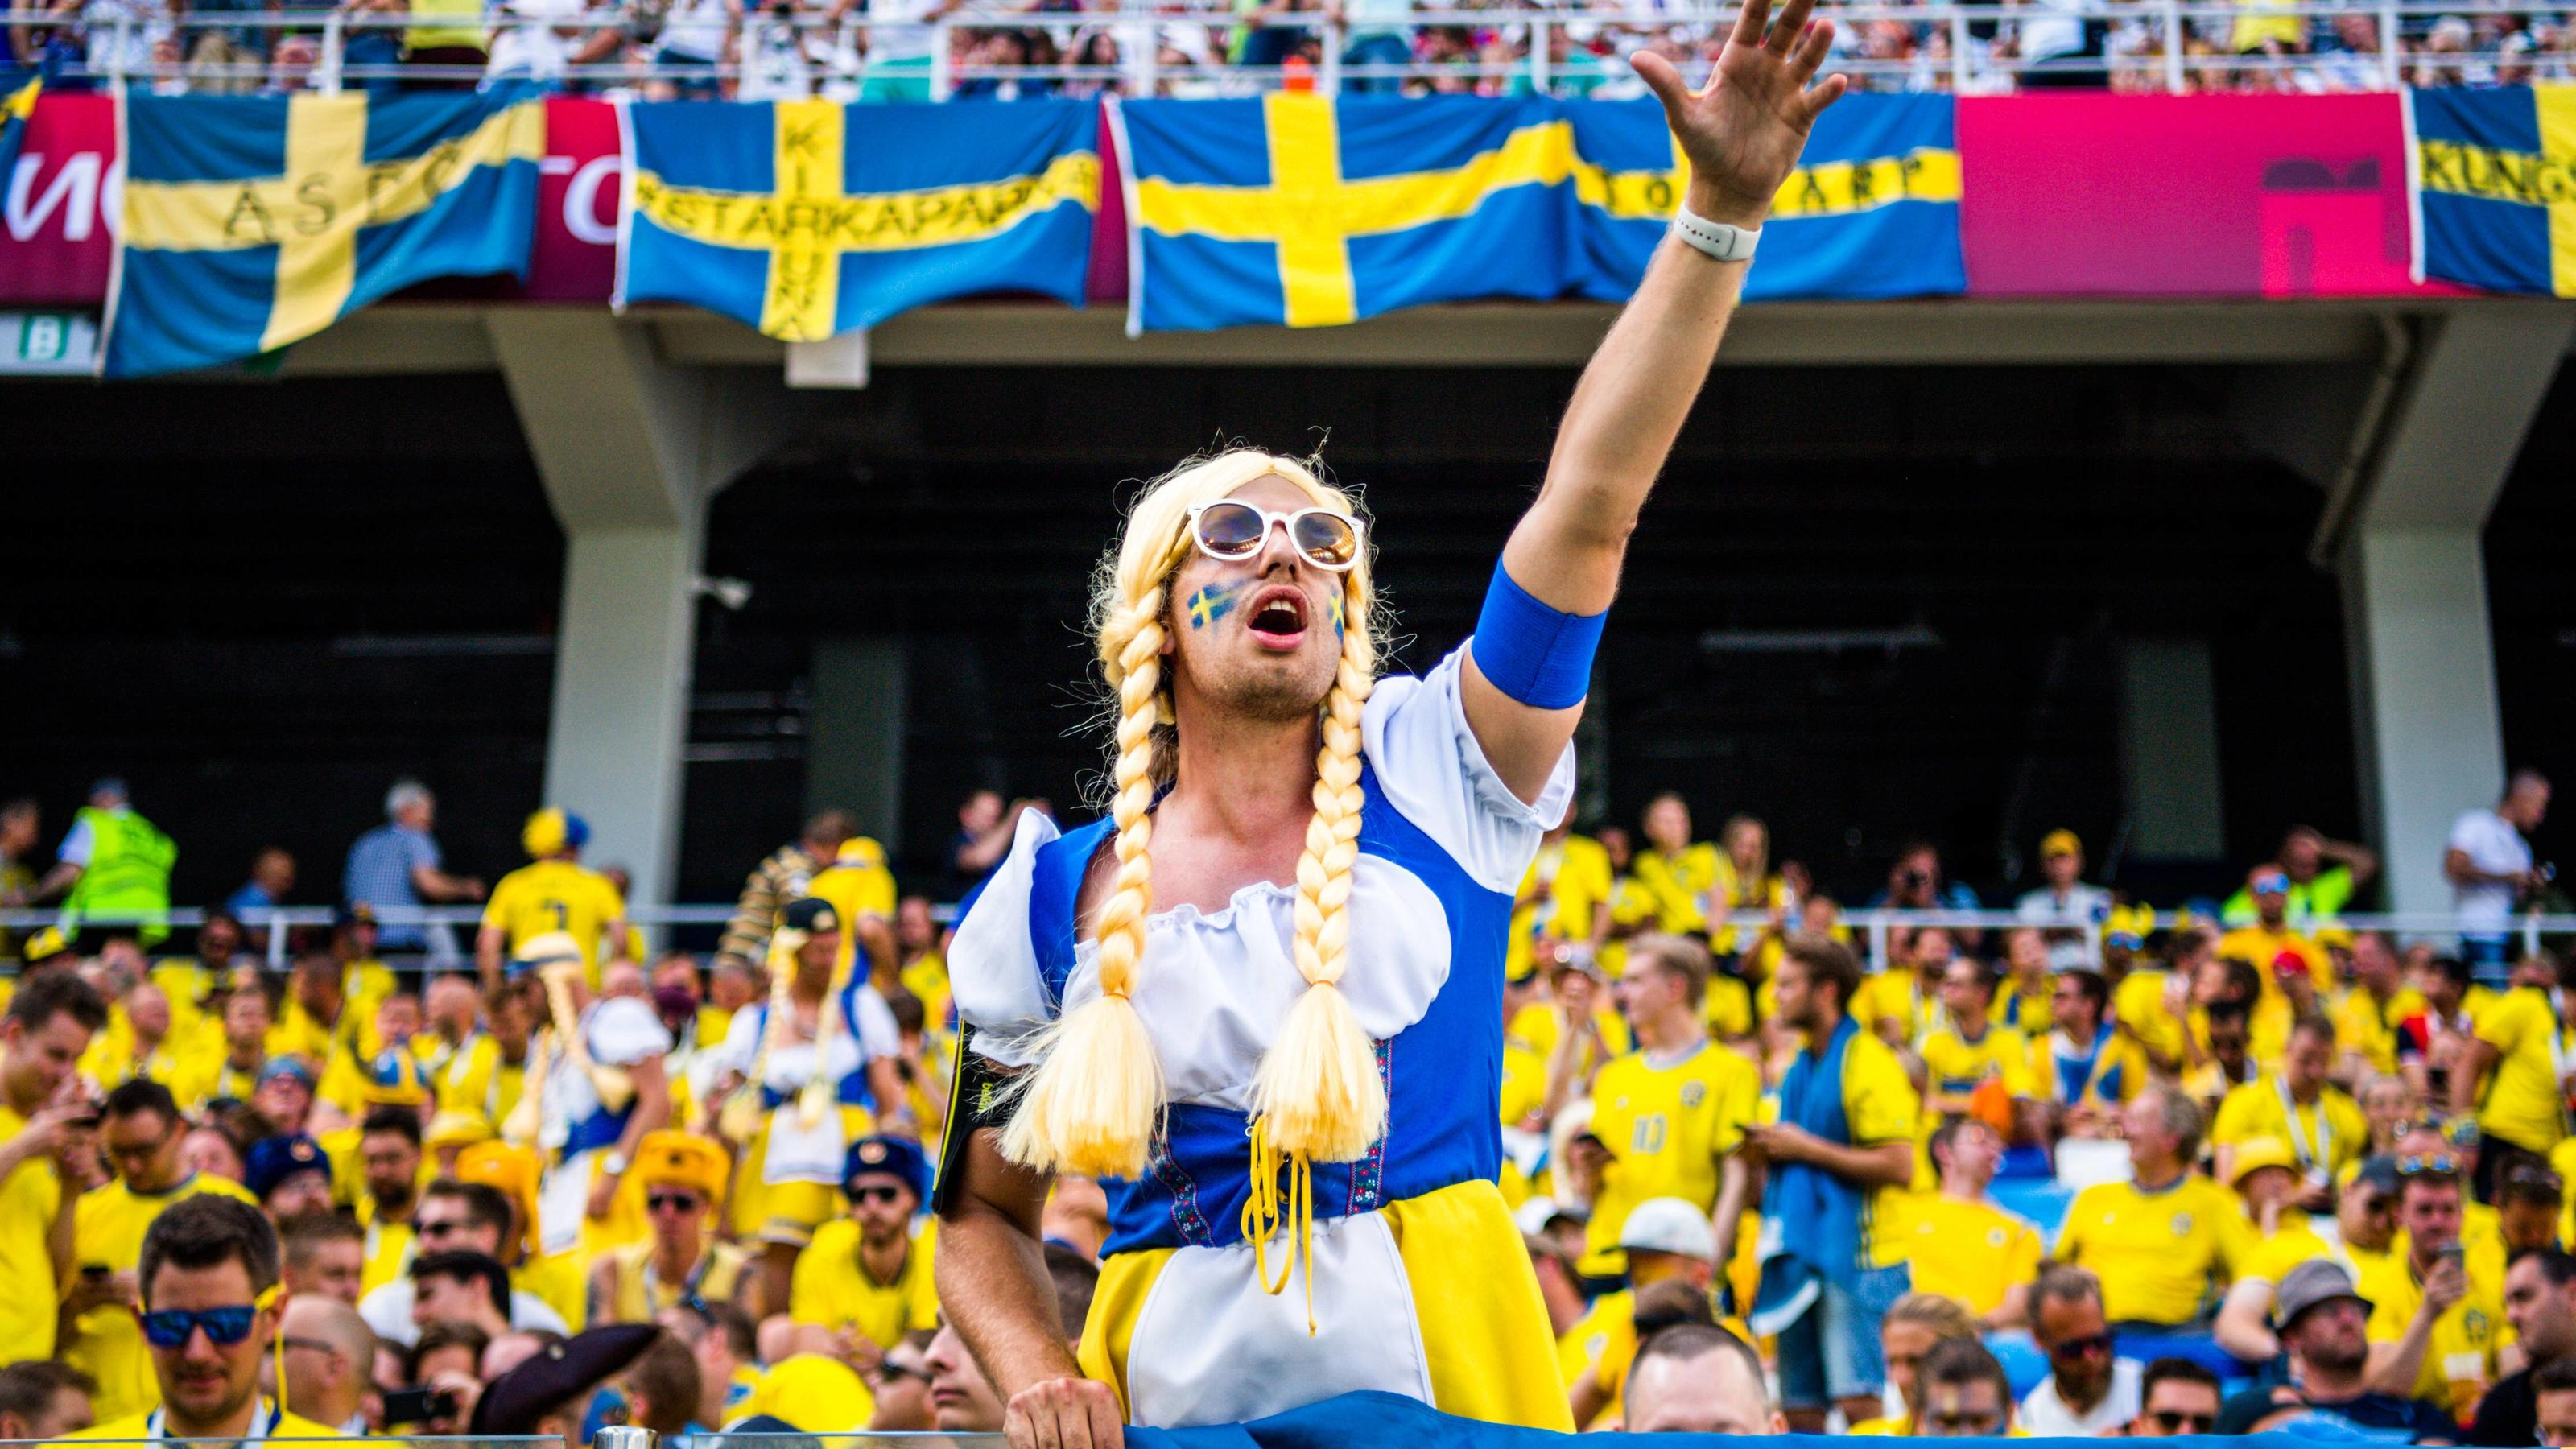 WM 2018, Schweden - Südkorea WM 2018, Schweden - Südkorea  180618 Fans of Sweden looks during the FIFA World Cup WM Weltmeisterschaft Fussball group stage match between Sweden and South Korea on June 18, 2018 in Nizhny Novgorod. Photo: Joel Marklund